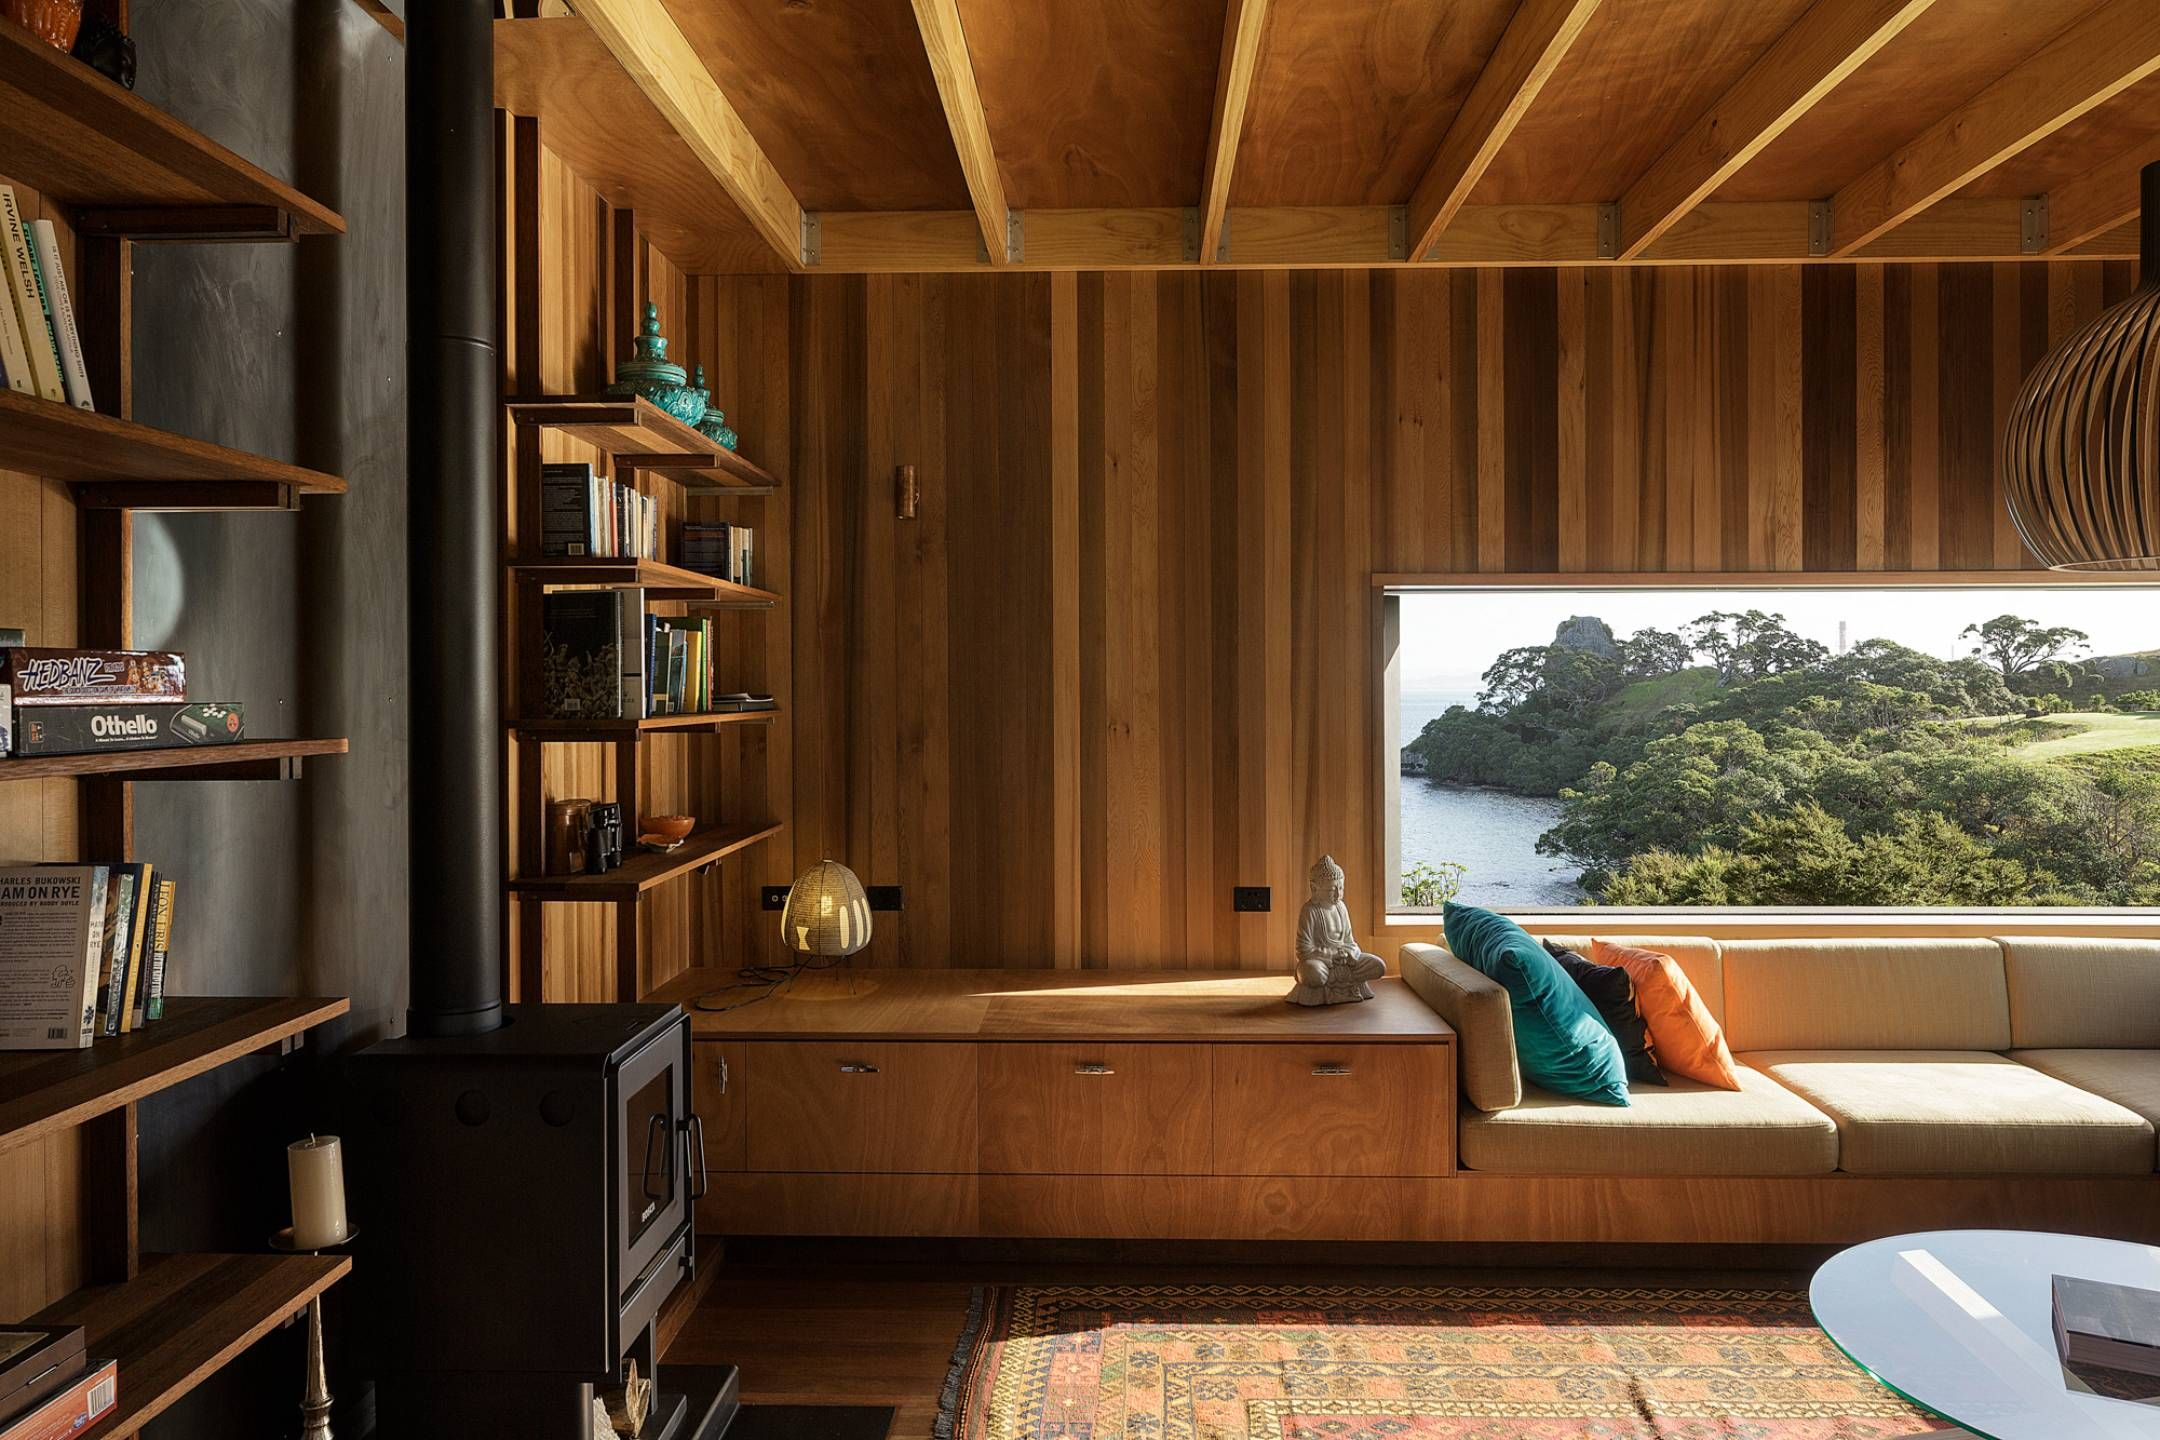 House design rock - Herbst Architects Castle Rock Residence Whangarei Heads Nz